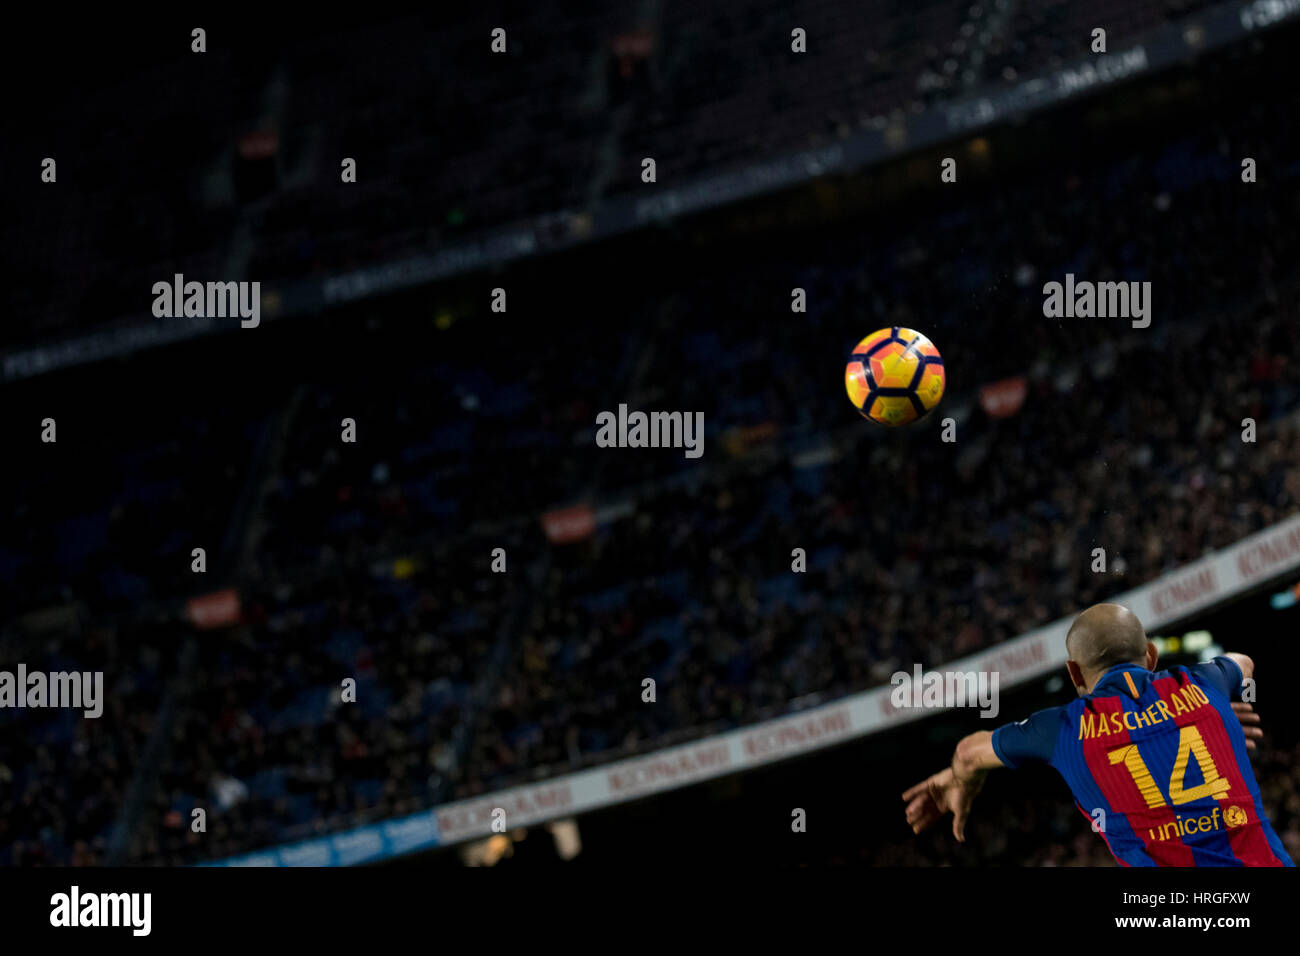 Camp Not Stadium, Barcelona, Spain. 1st March, 2017. Throw of Macherano at Camp Nou Stadium, Barcelona, Spain. Credit: - Stock Image